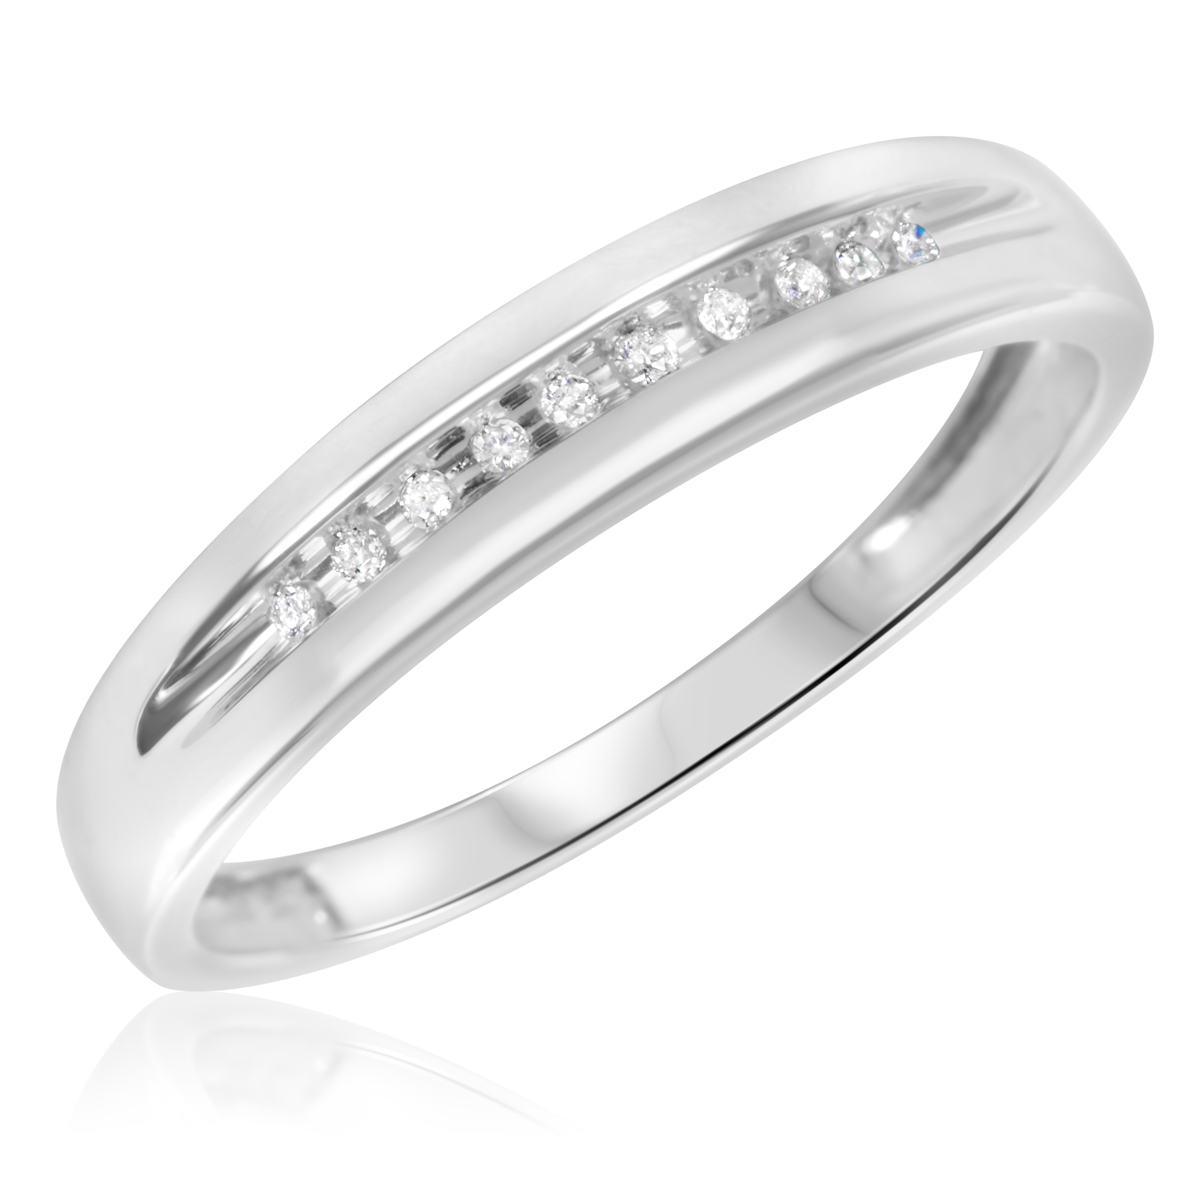 1 15 CT TW Diamond Mens Wedding Band 14K White Gold